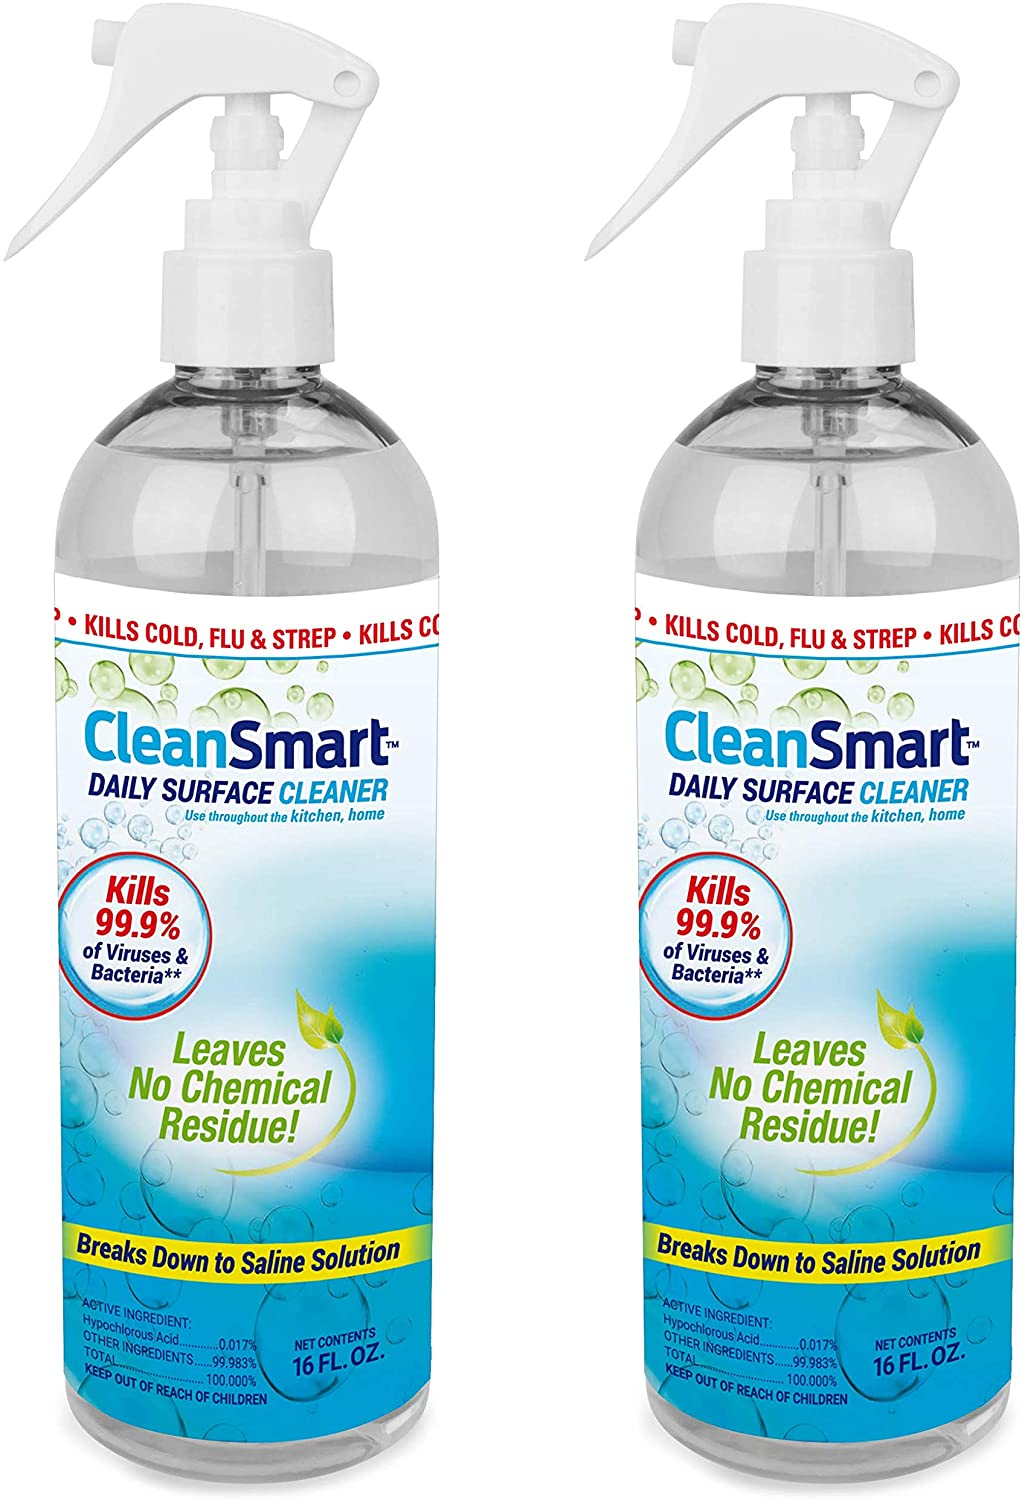 Cleansmart disinfectant spray mist